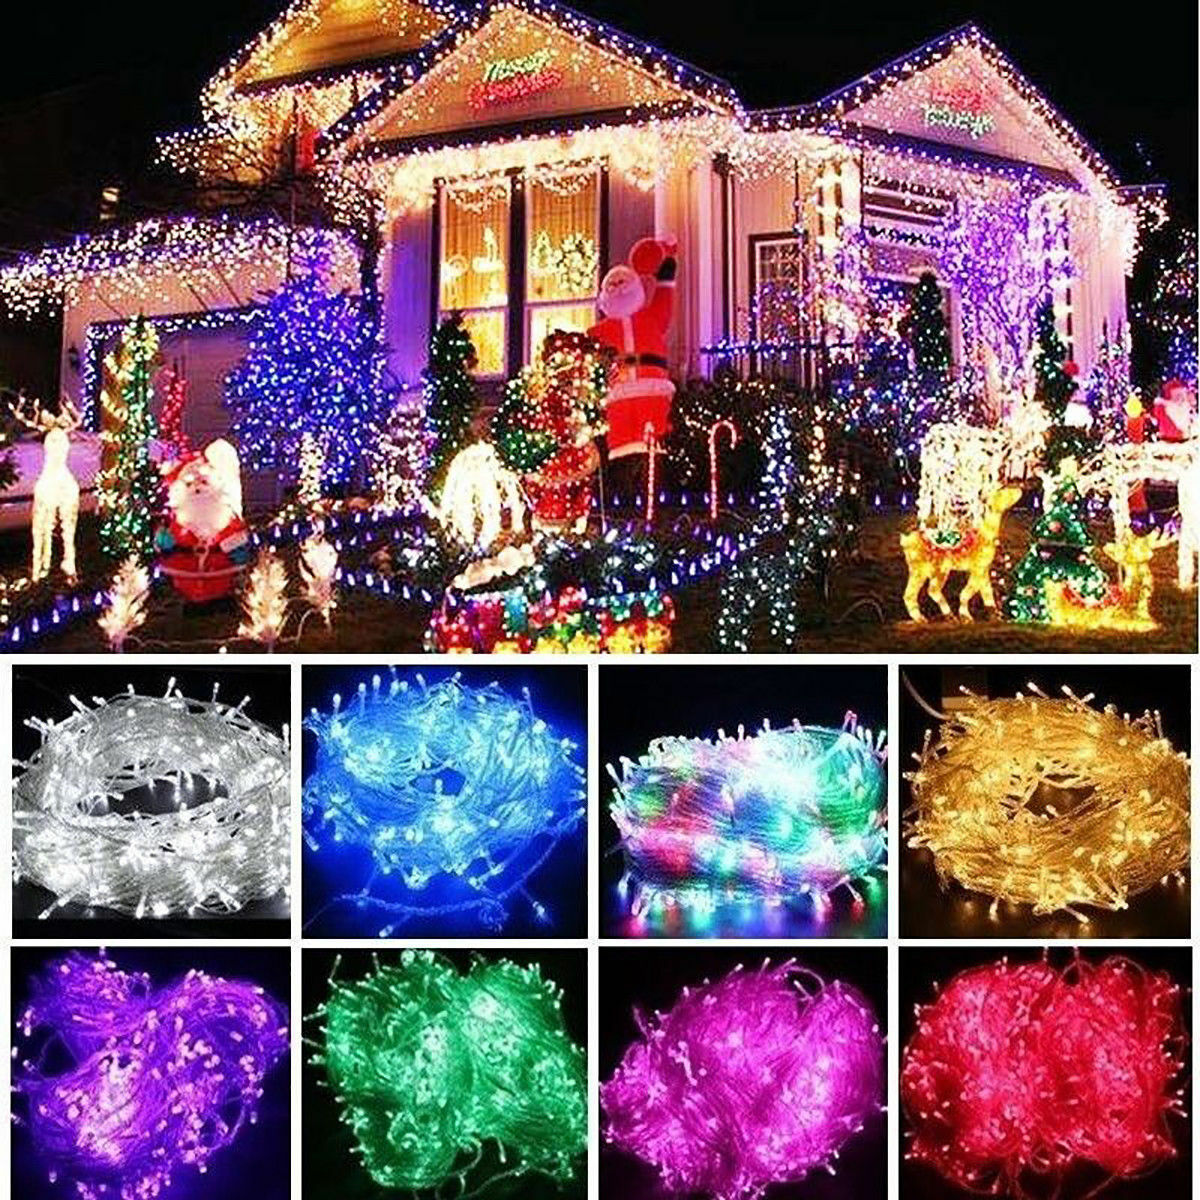 100 200 500 800 1000 led innen au en lichterkette weihnachten mode deko fenster eur 6 66. Black Bedroom Furniture Sets. Home Design Ideas